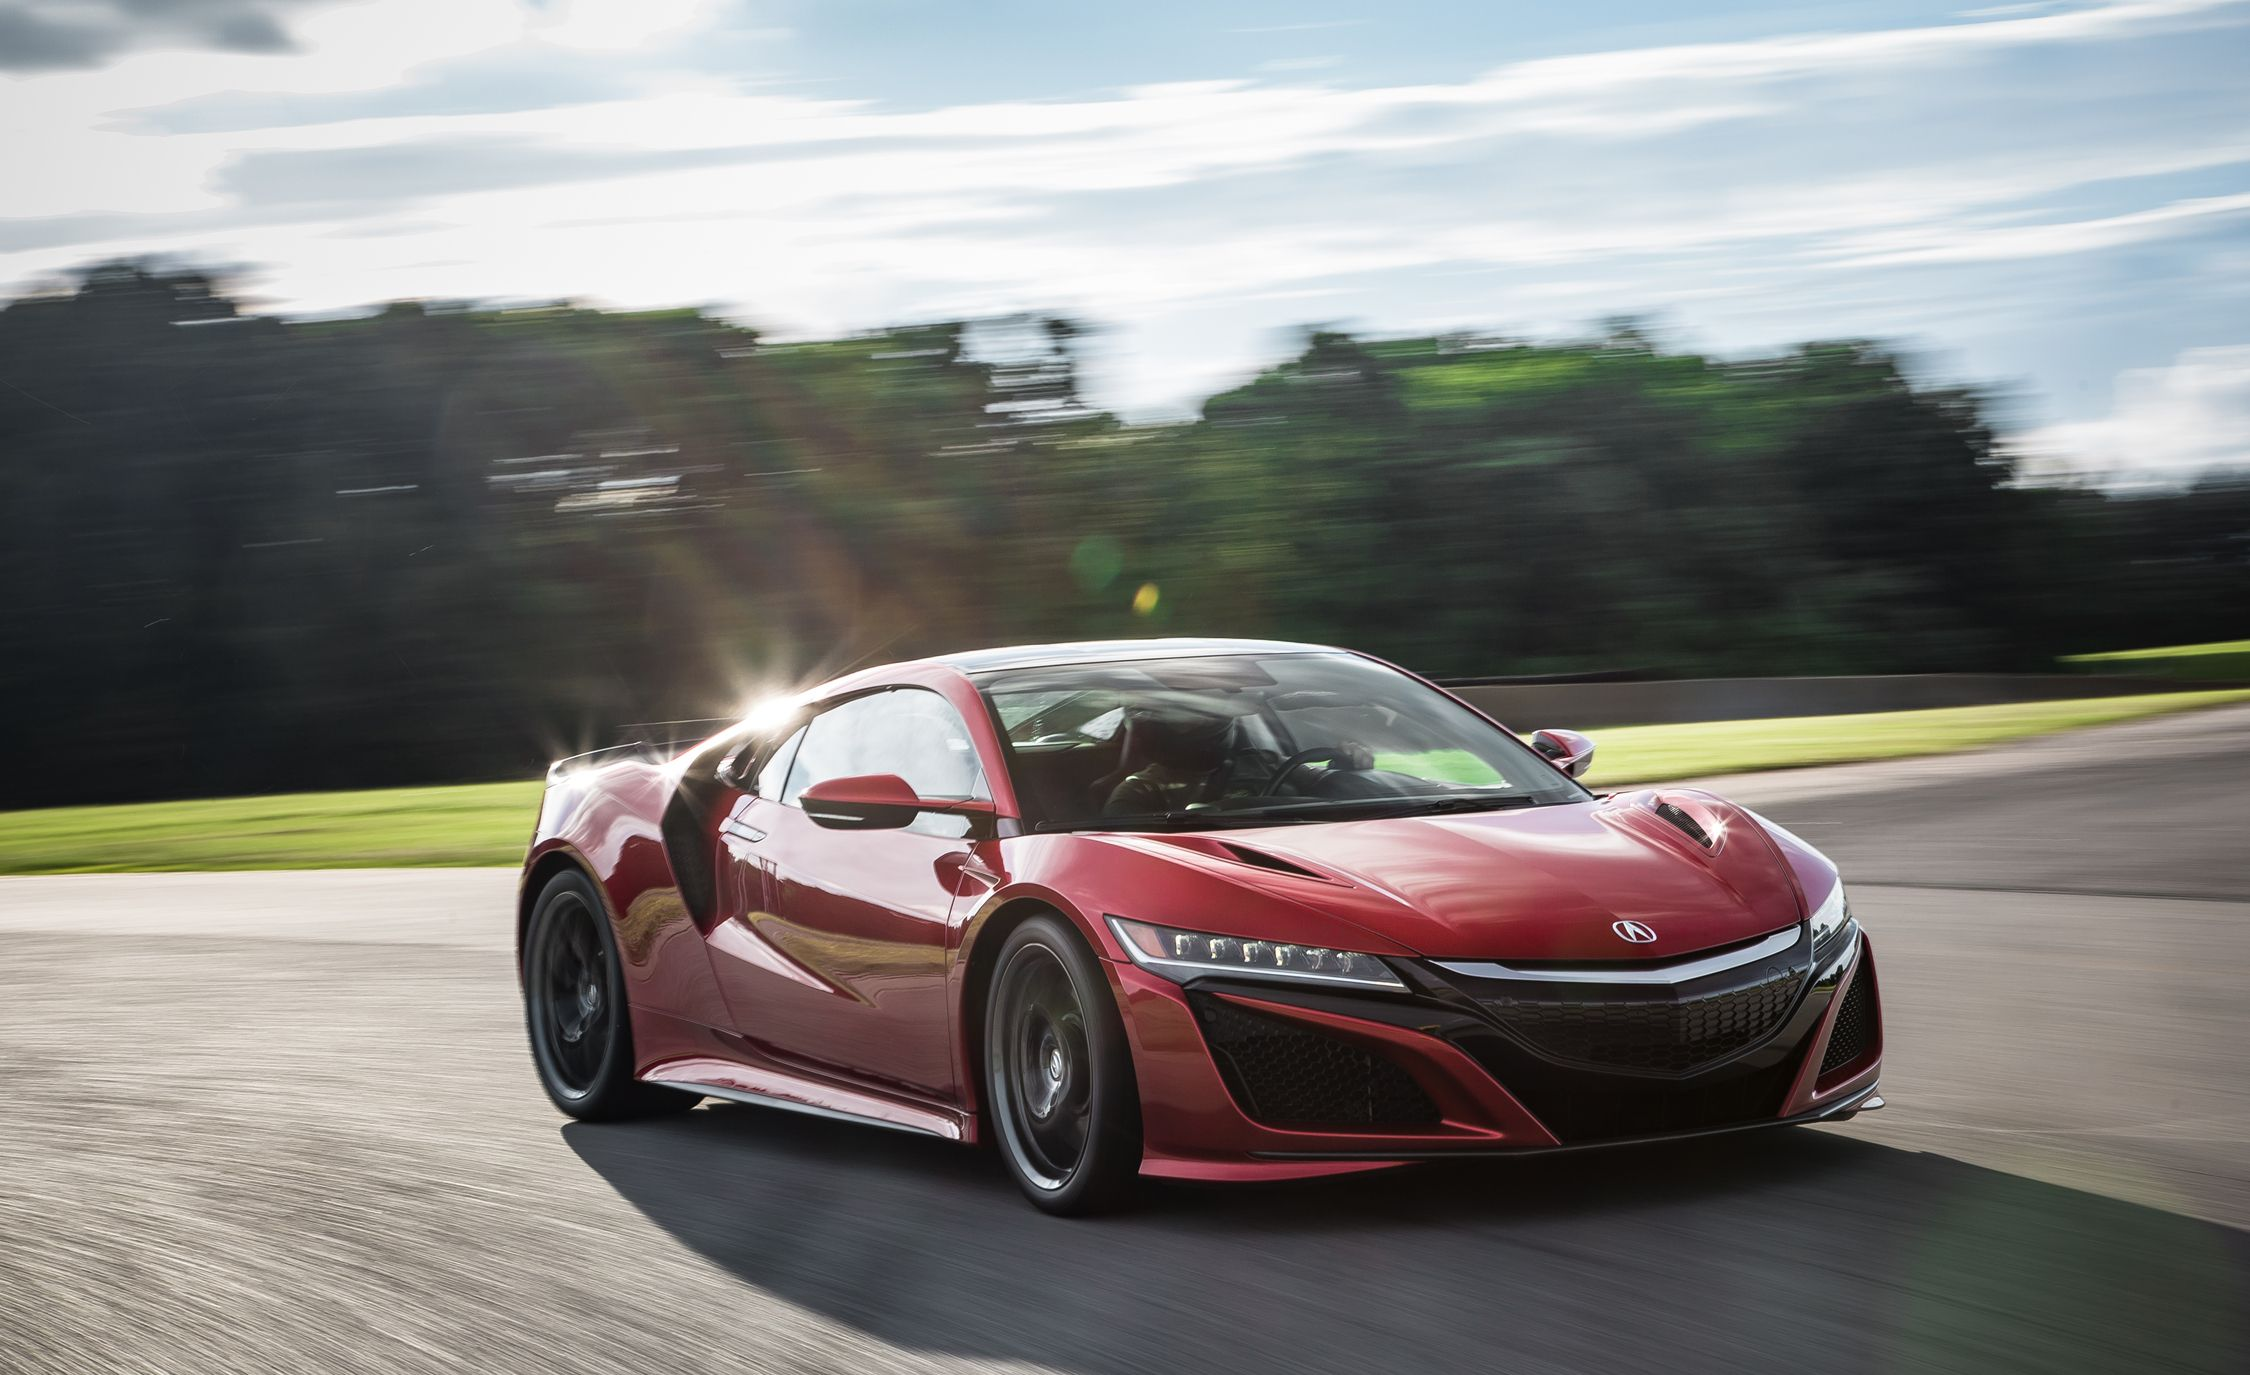 2017 Acura NSX Supercar Full Test | Review | Car and Driver